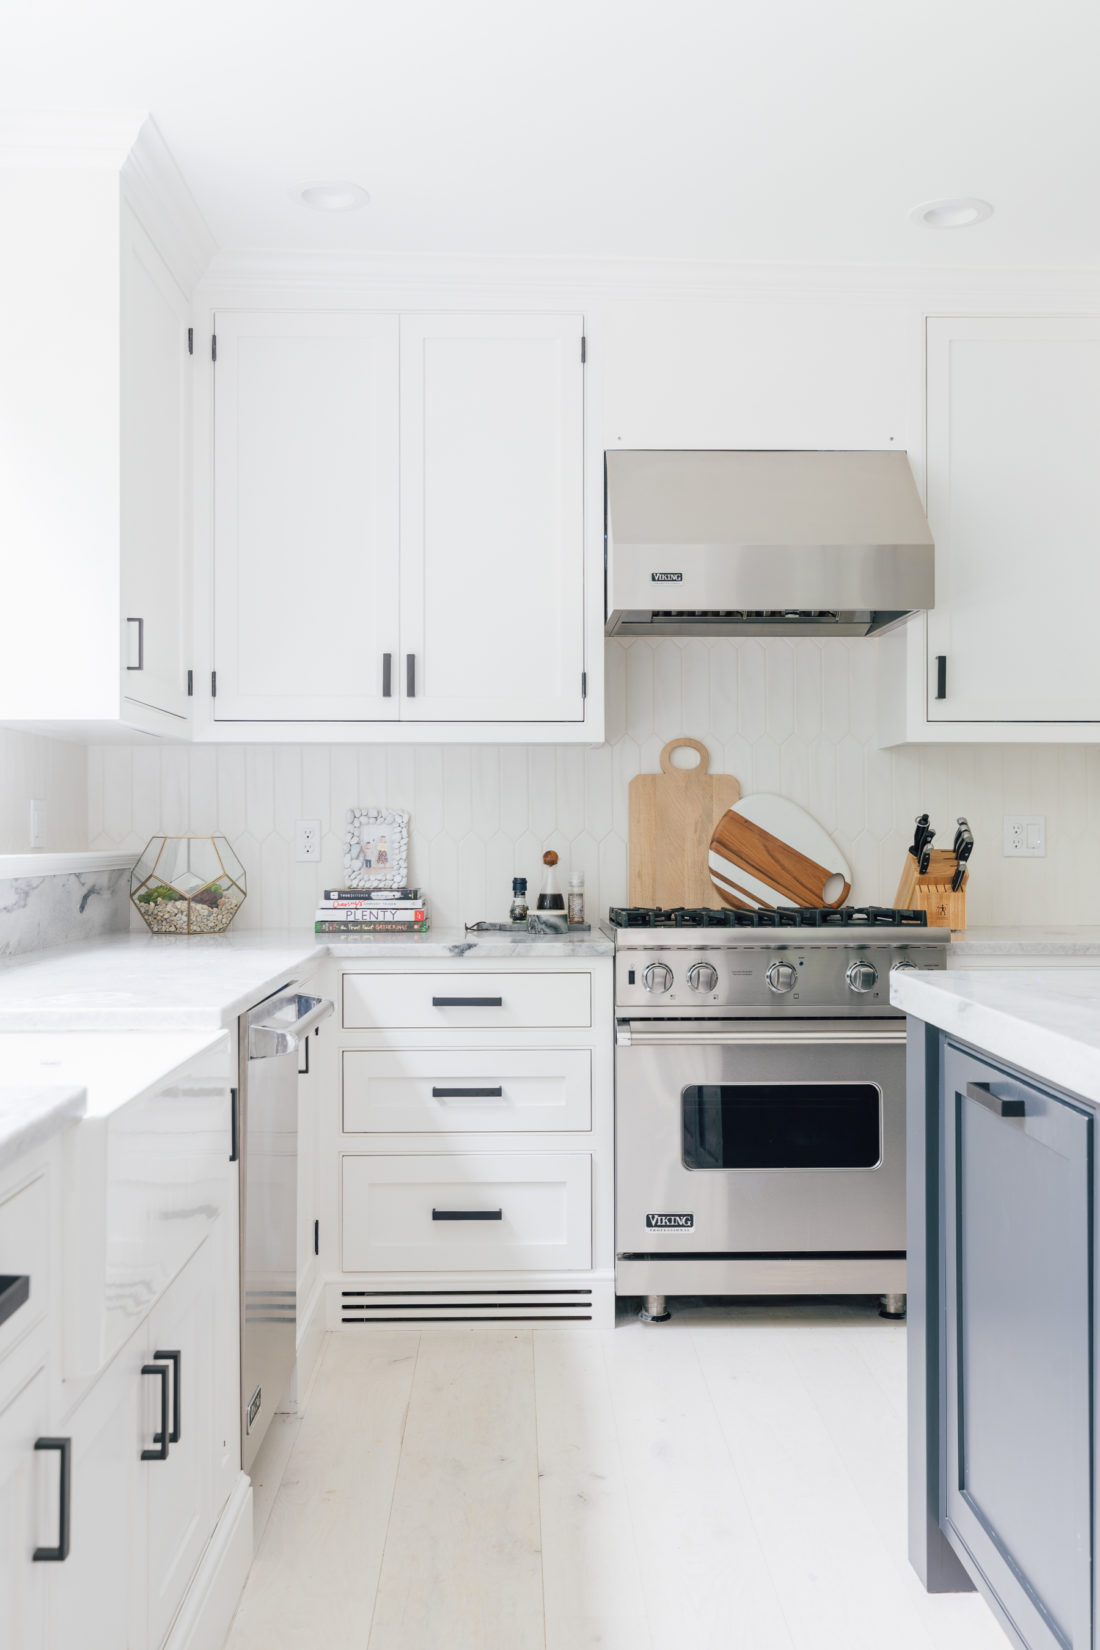 Eva Amurri Martino's renovated historical home features a white and bright kitchen with top of the line appliances and a large center island